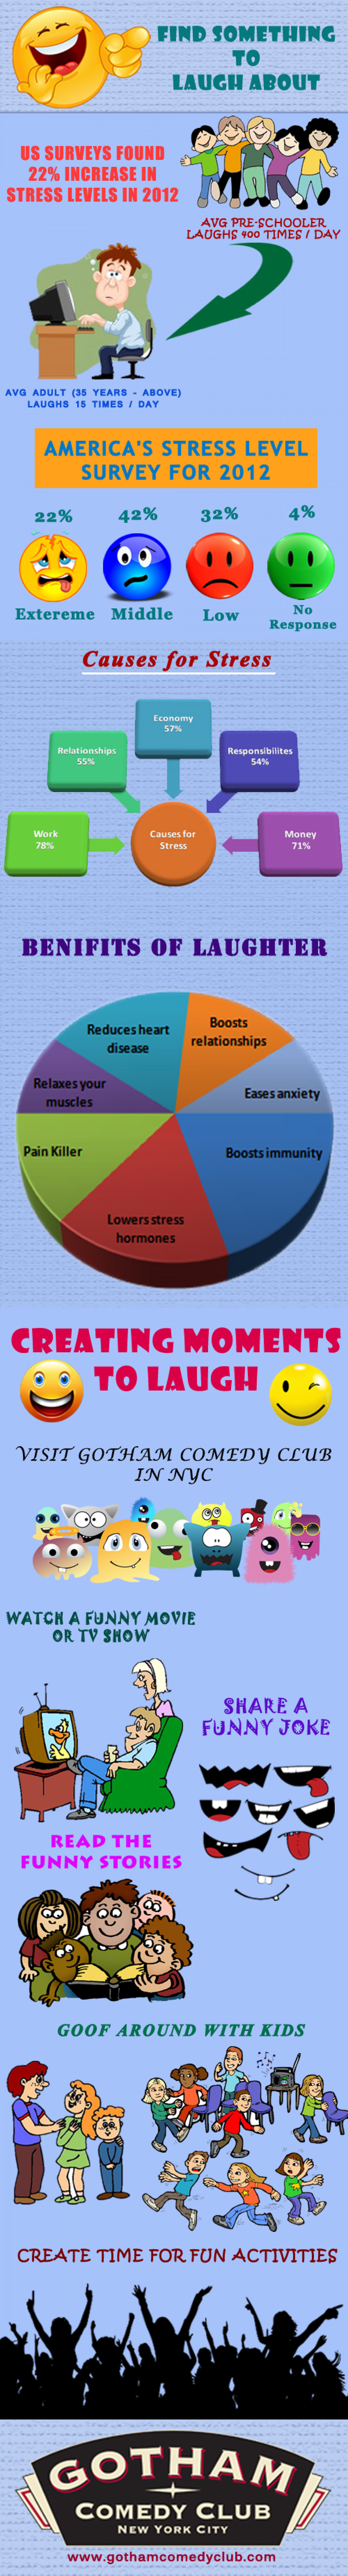 Finding something to laugh about Infographic